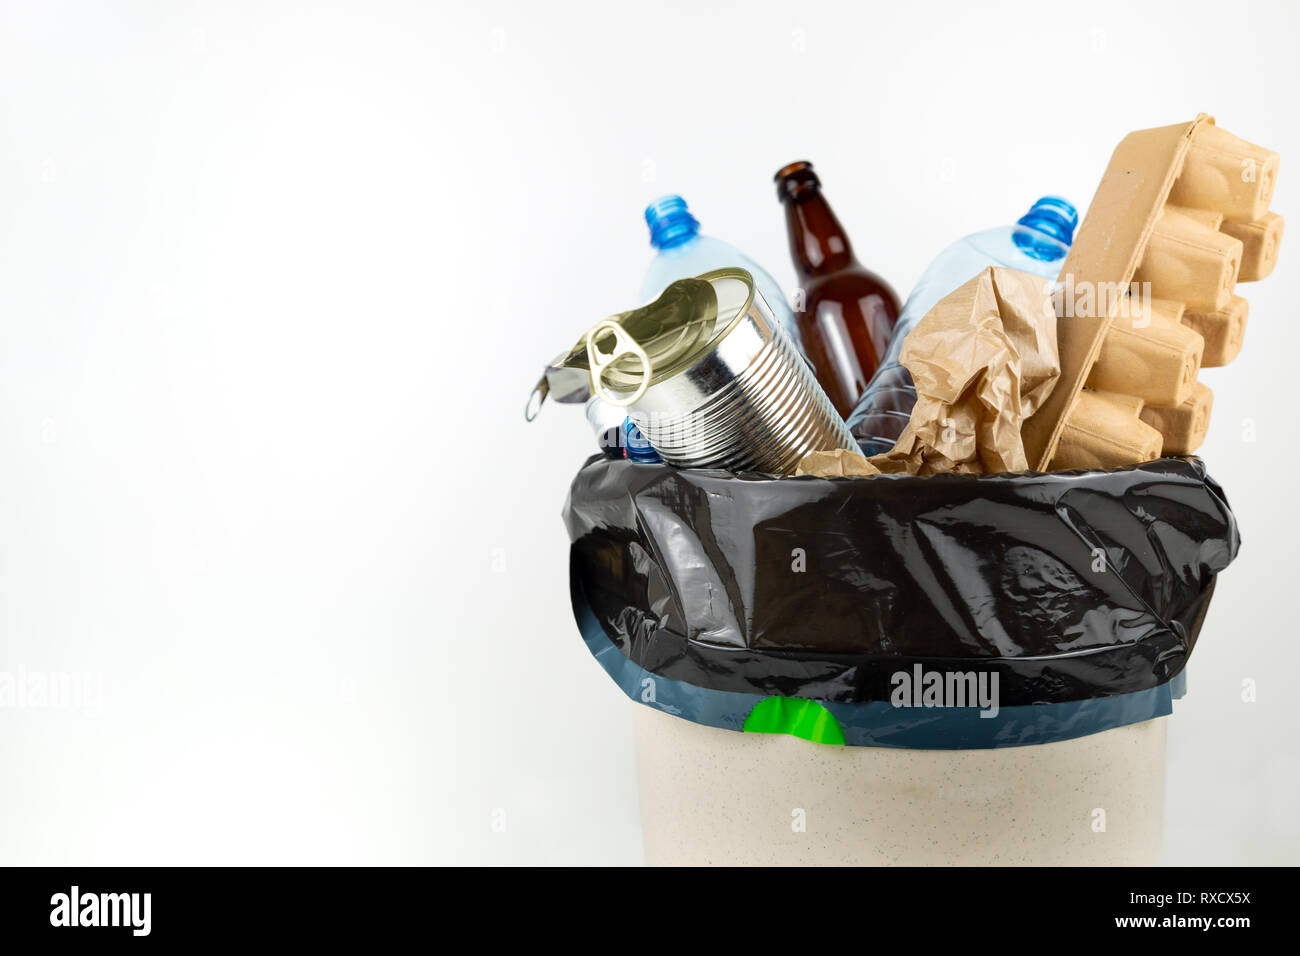 Plastic, glass, metal and paper garbage in black garbage bag for recycling concept reuse and recycle - Stock Image